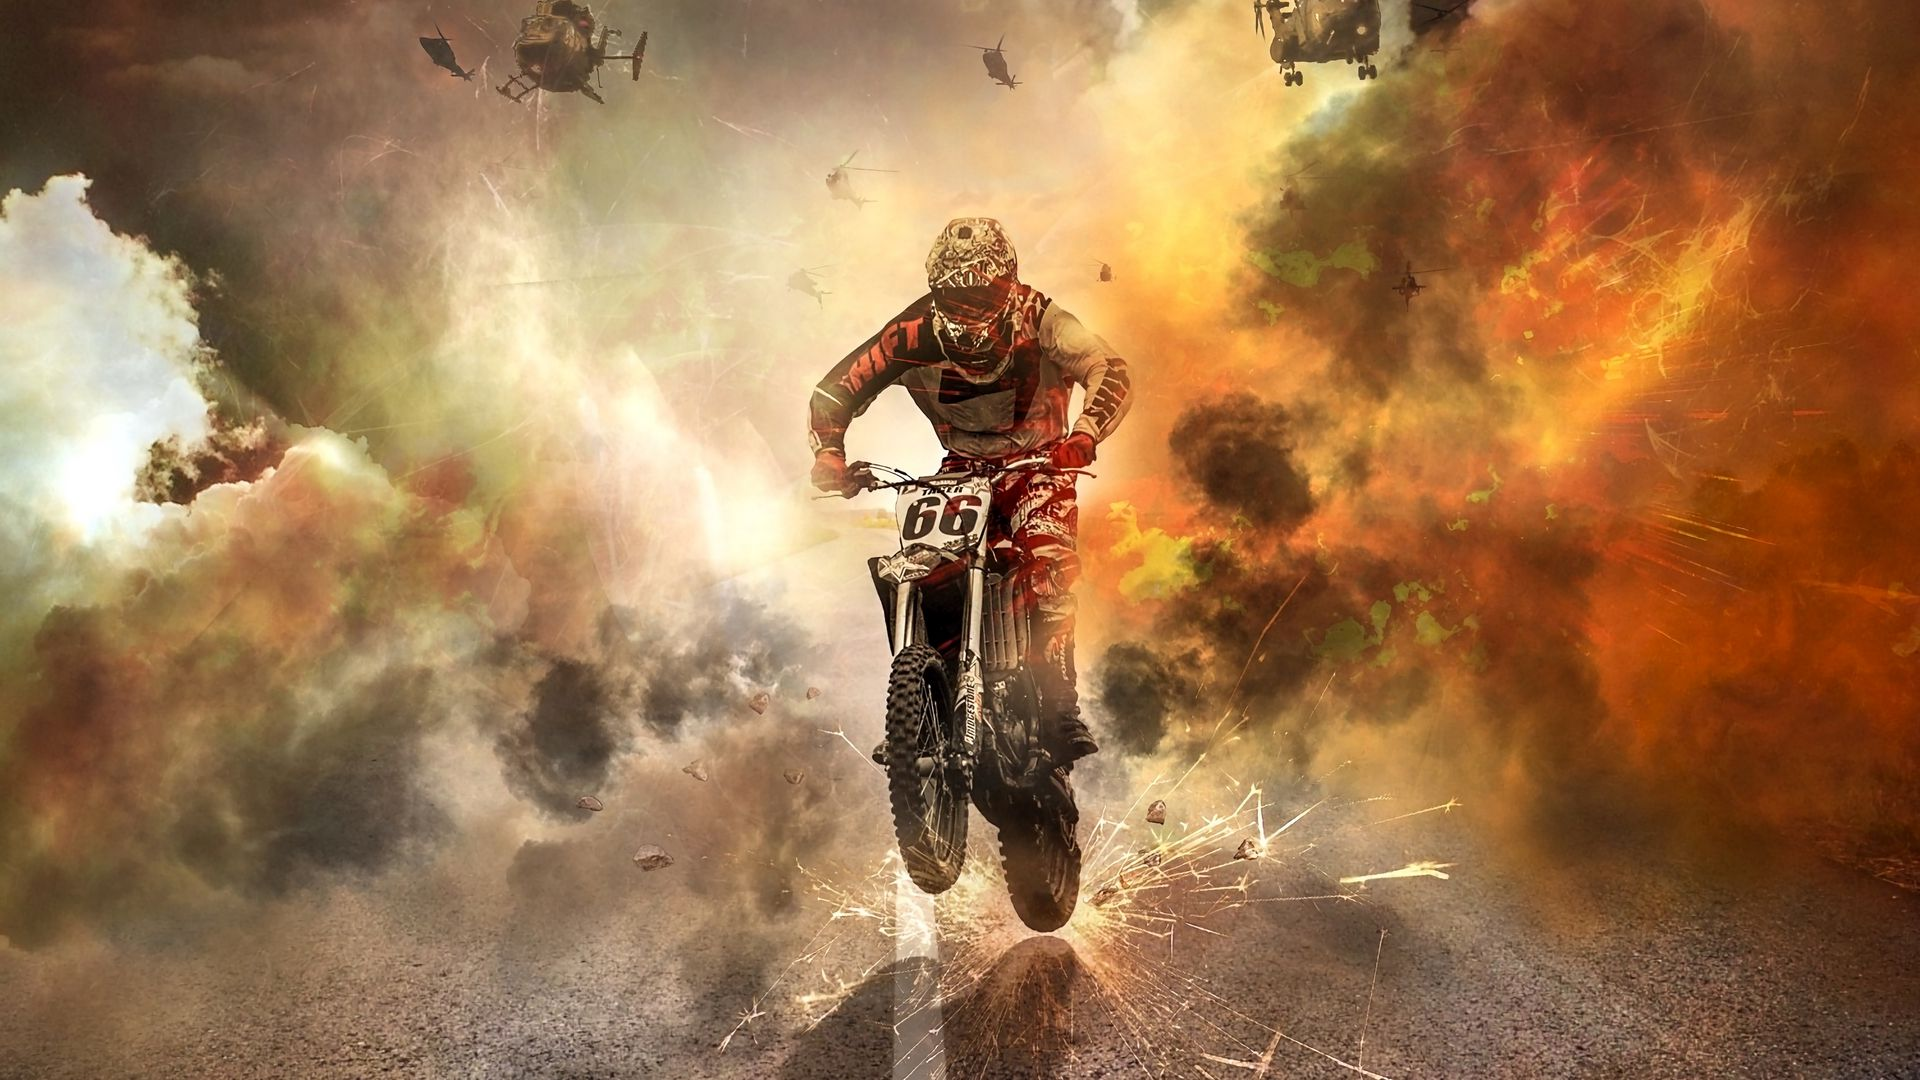 Motorcyclist, Motorcycle, Helicopters Download Free HD Wallpapers